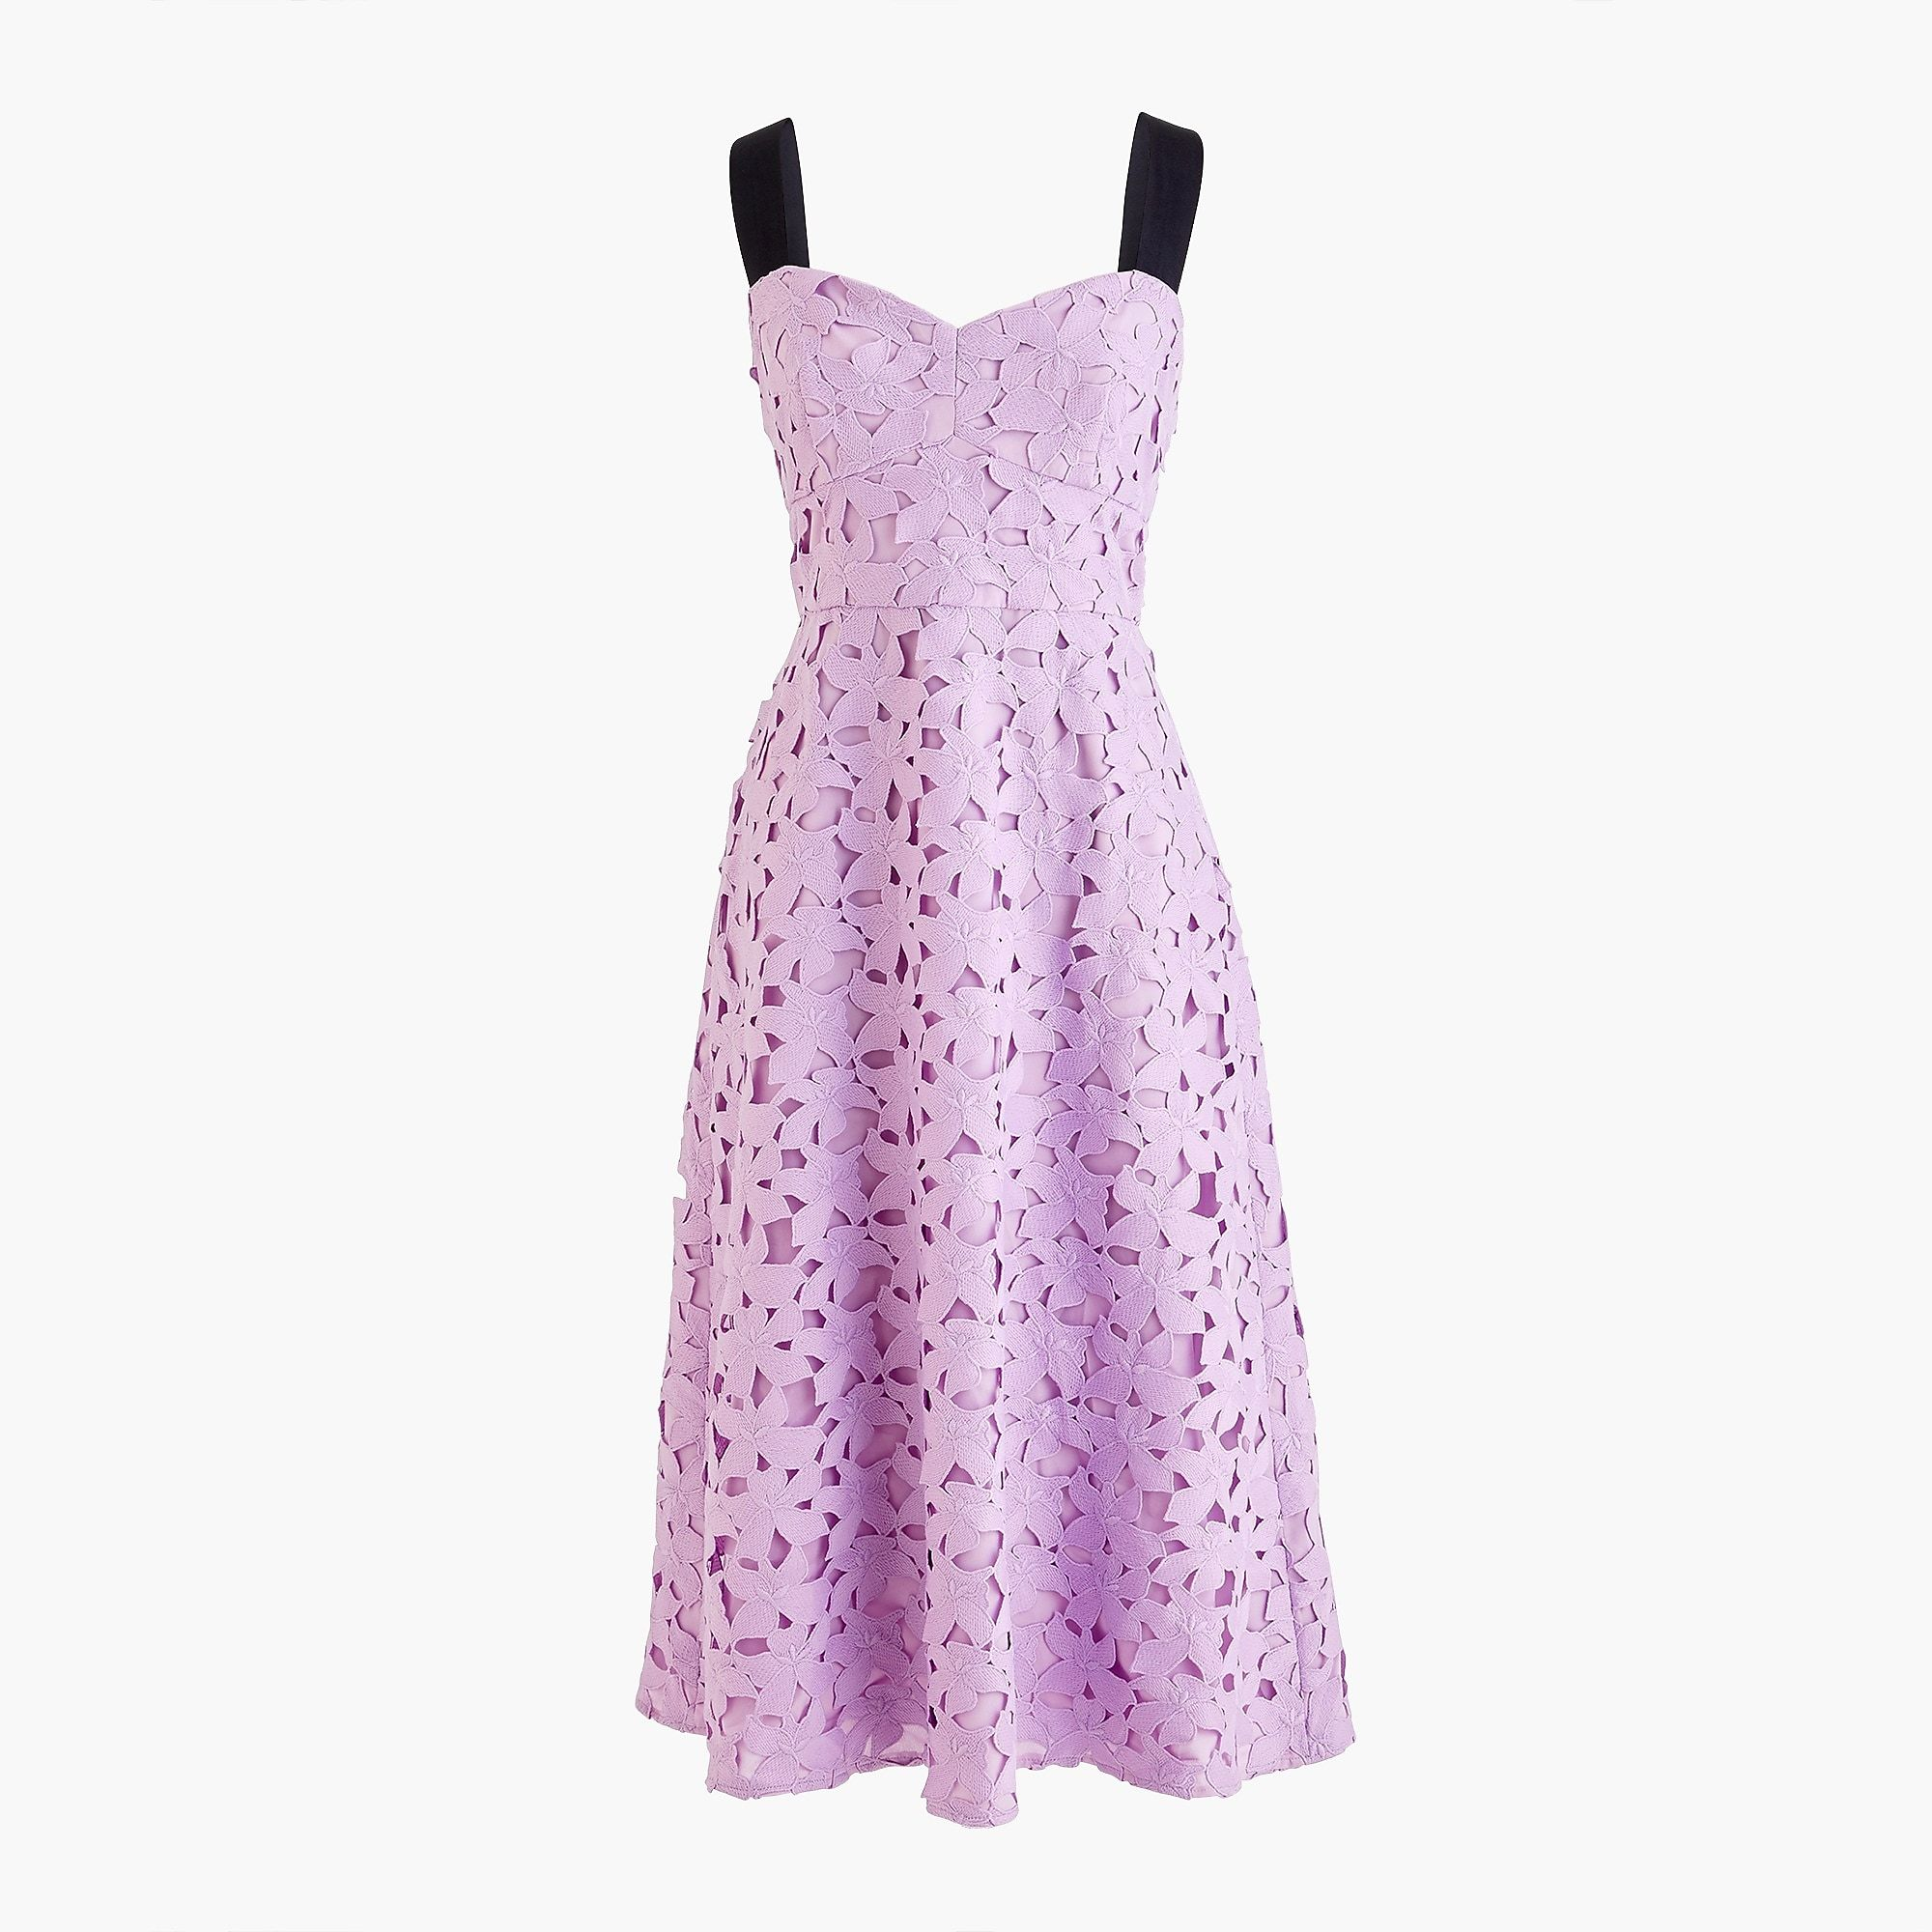 Shop J Crew For The Sleeveless Sweetheart Midi Dress In Lace For Women Find The Best Selection Of Women Dresses Available In Dresses Midi Dress Womens Dresses [ 2000 x 2000 Pixel ]